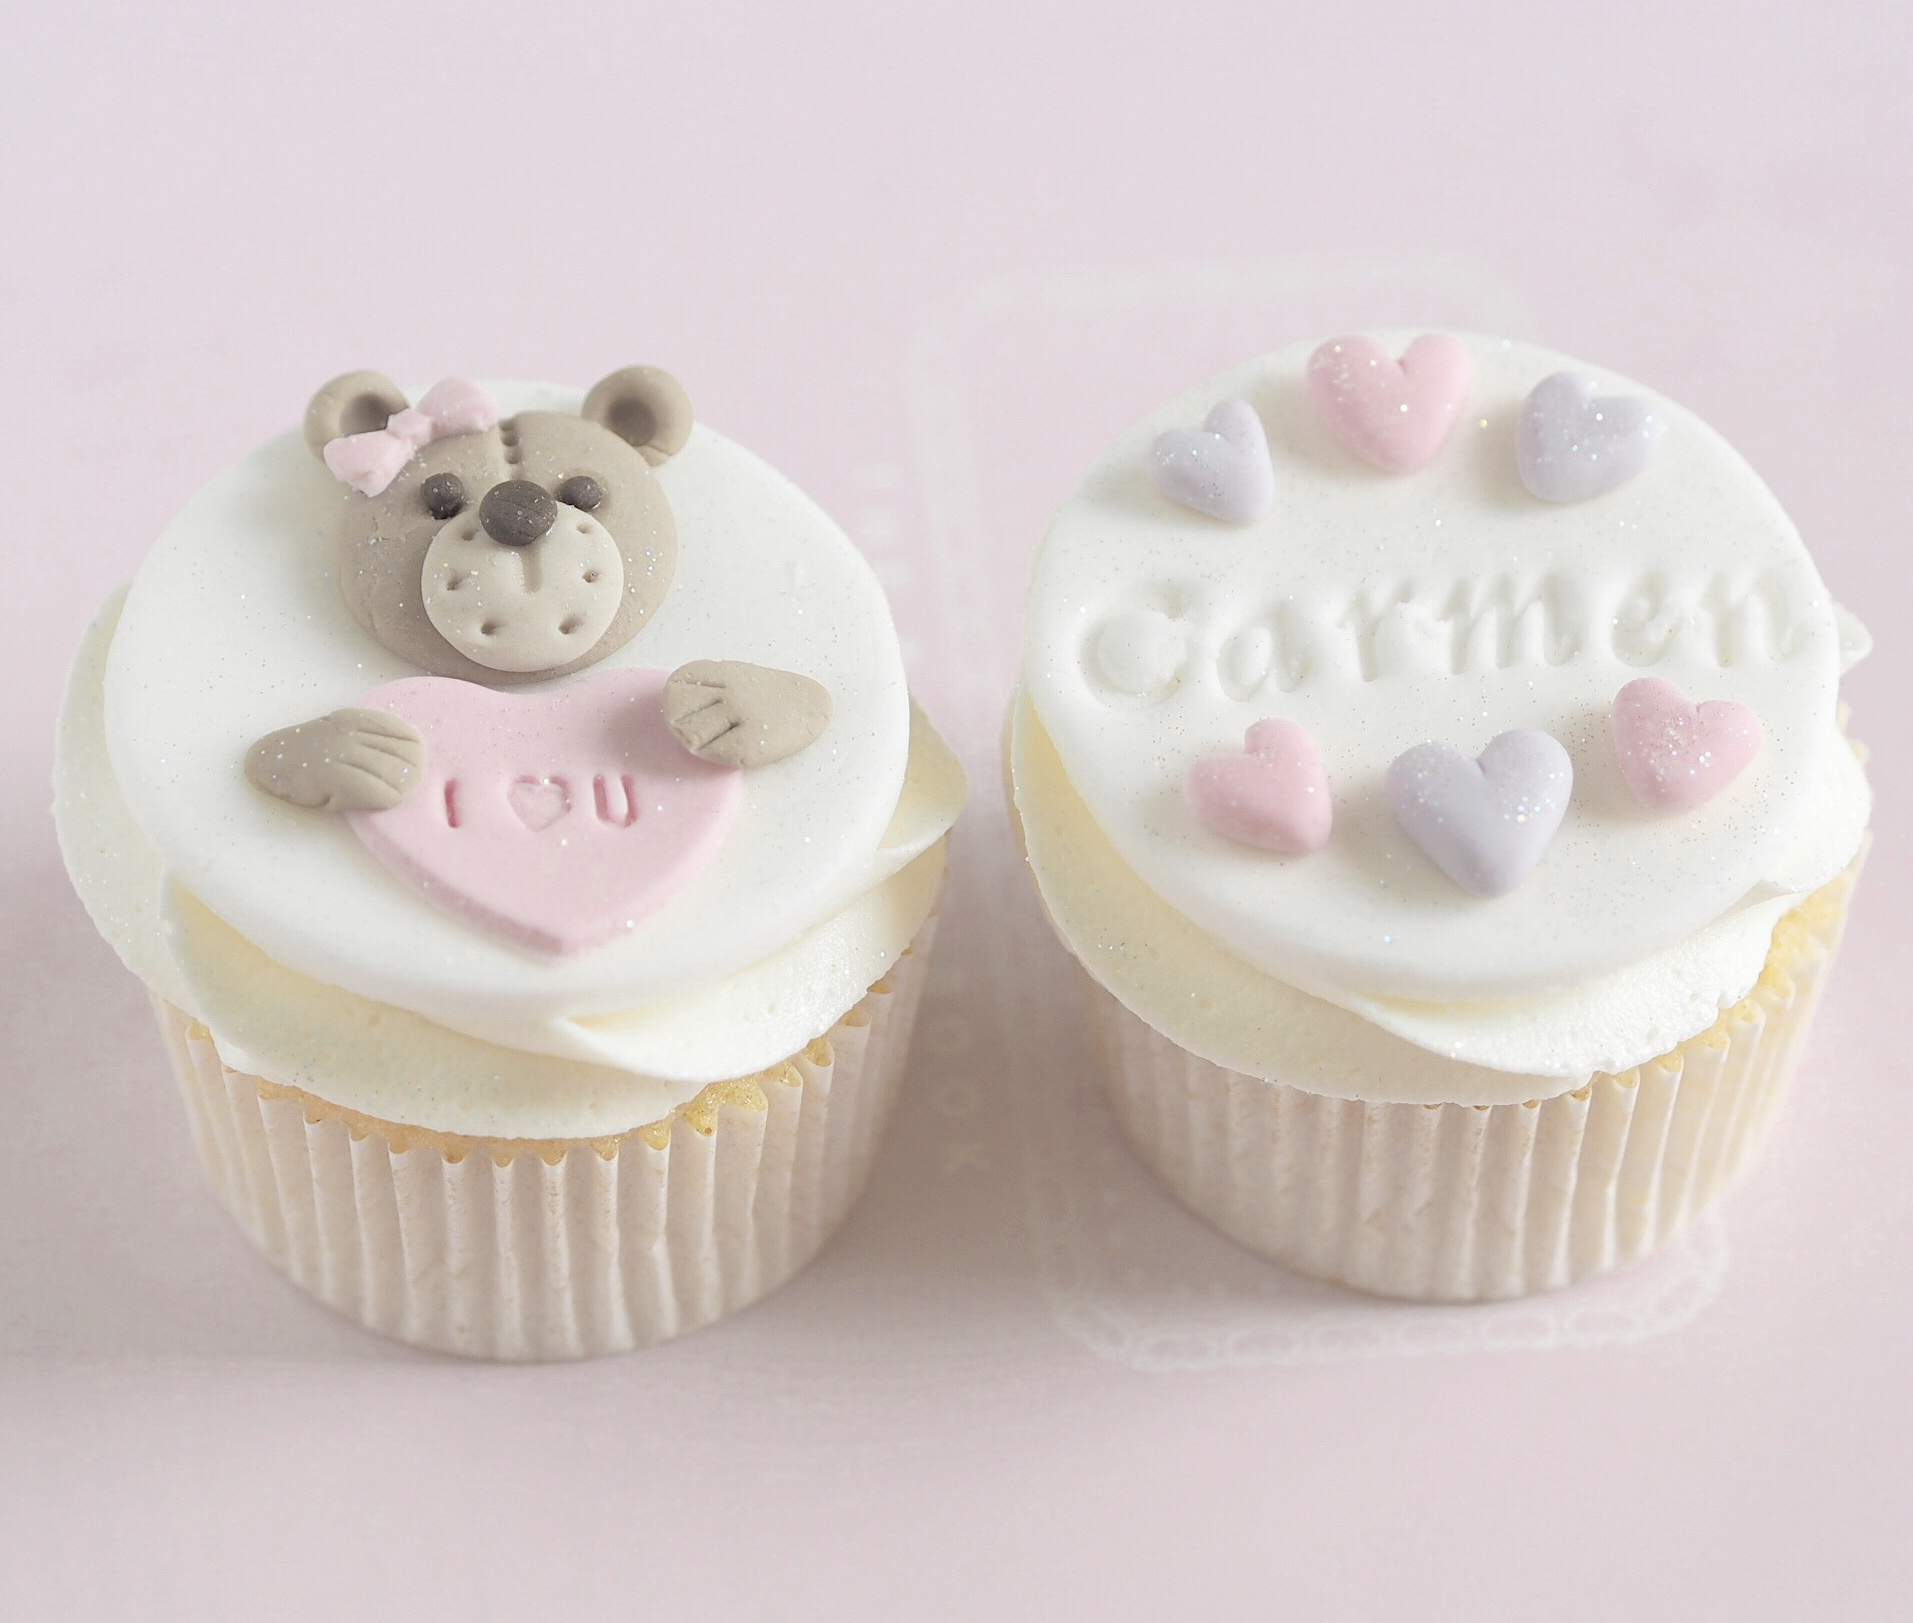 12 Cute Ways To Fall In Love With February, Teddy Bear Valentines Cupcakes | Love Catherine